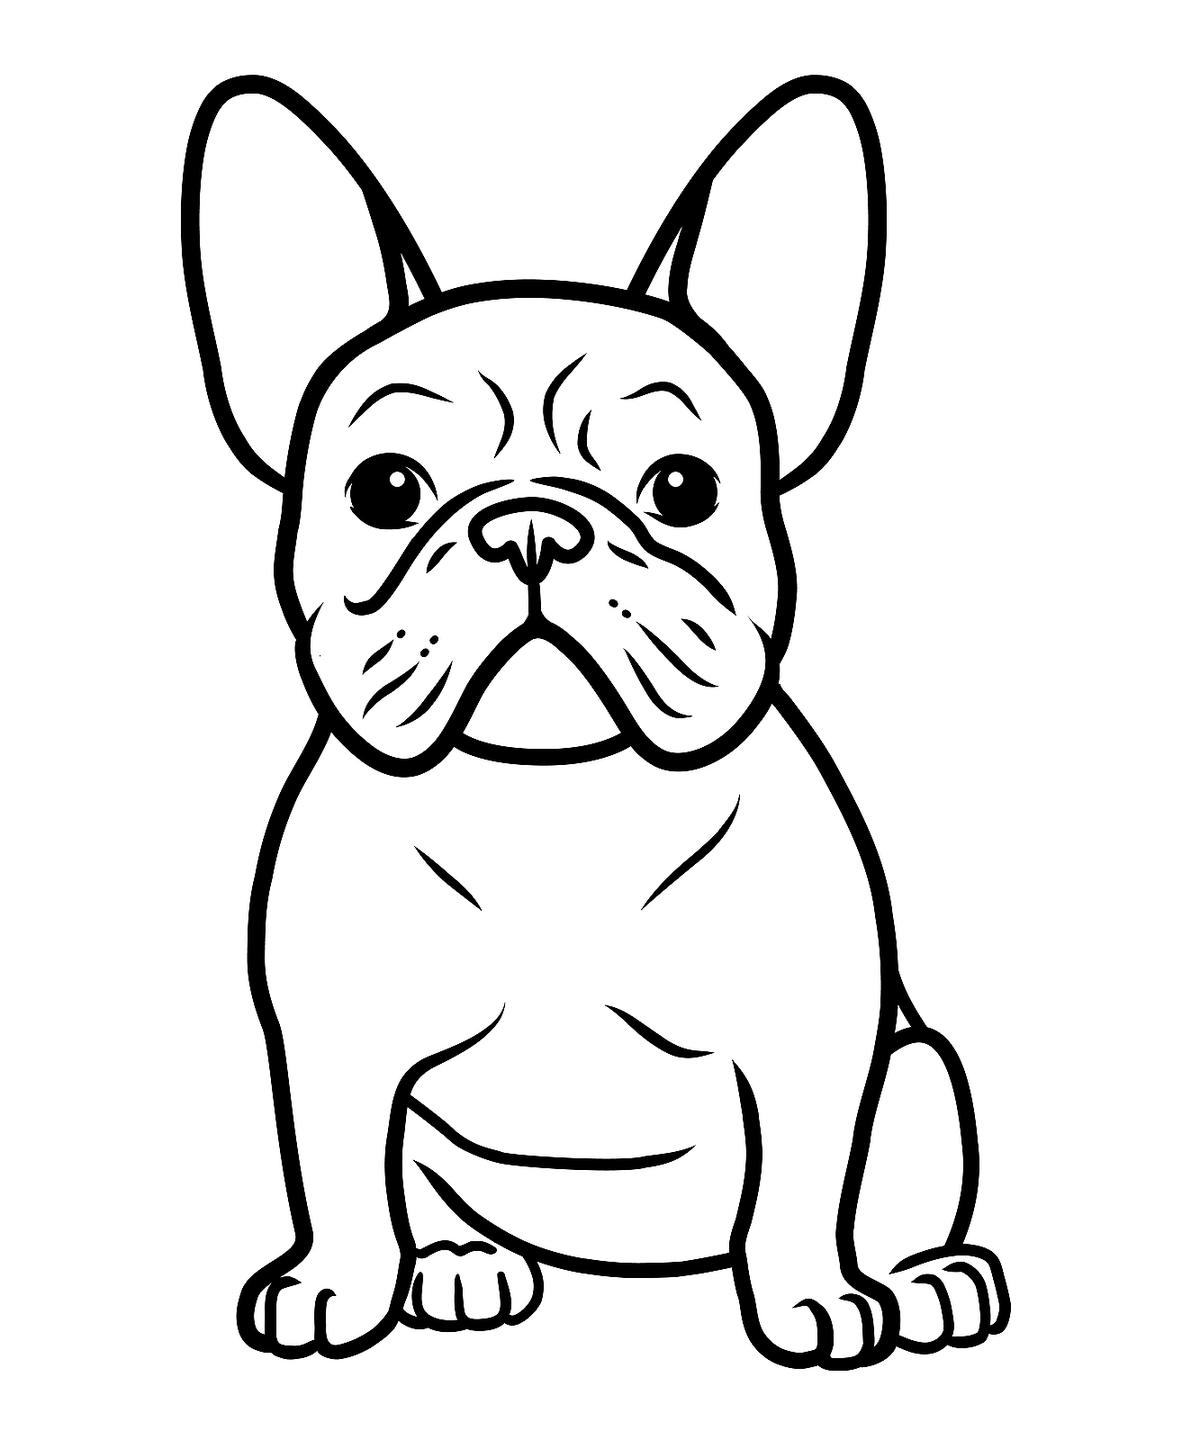 dogs colouring cute dog coloring pages to download and print for free dogs colouring 1 1